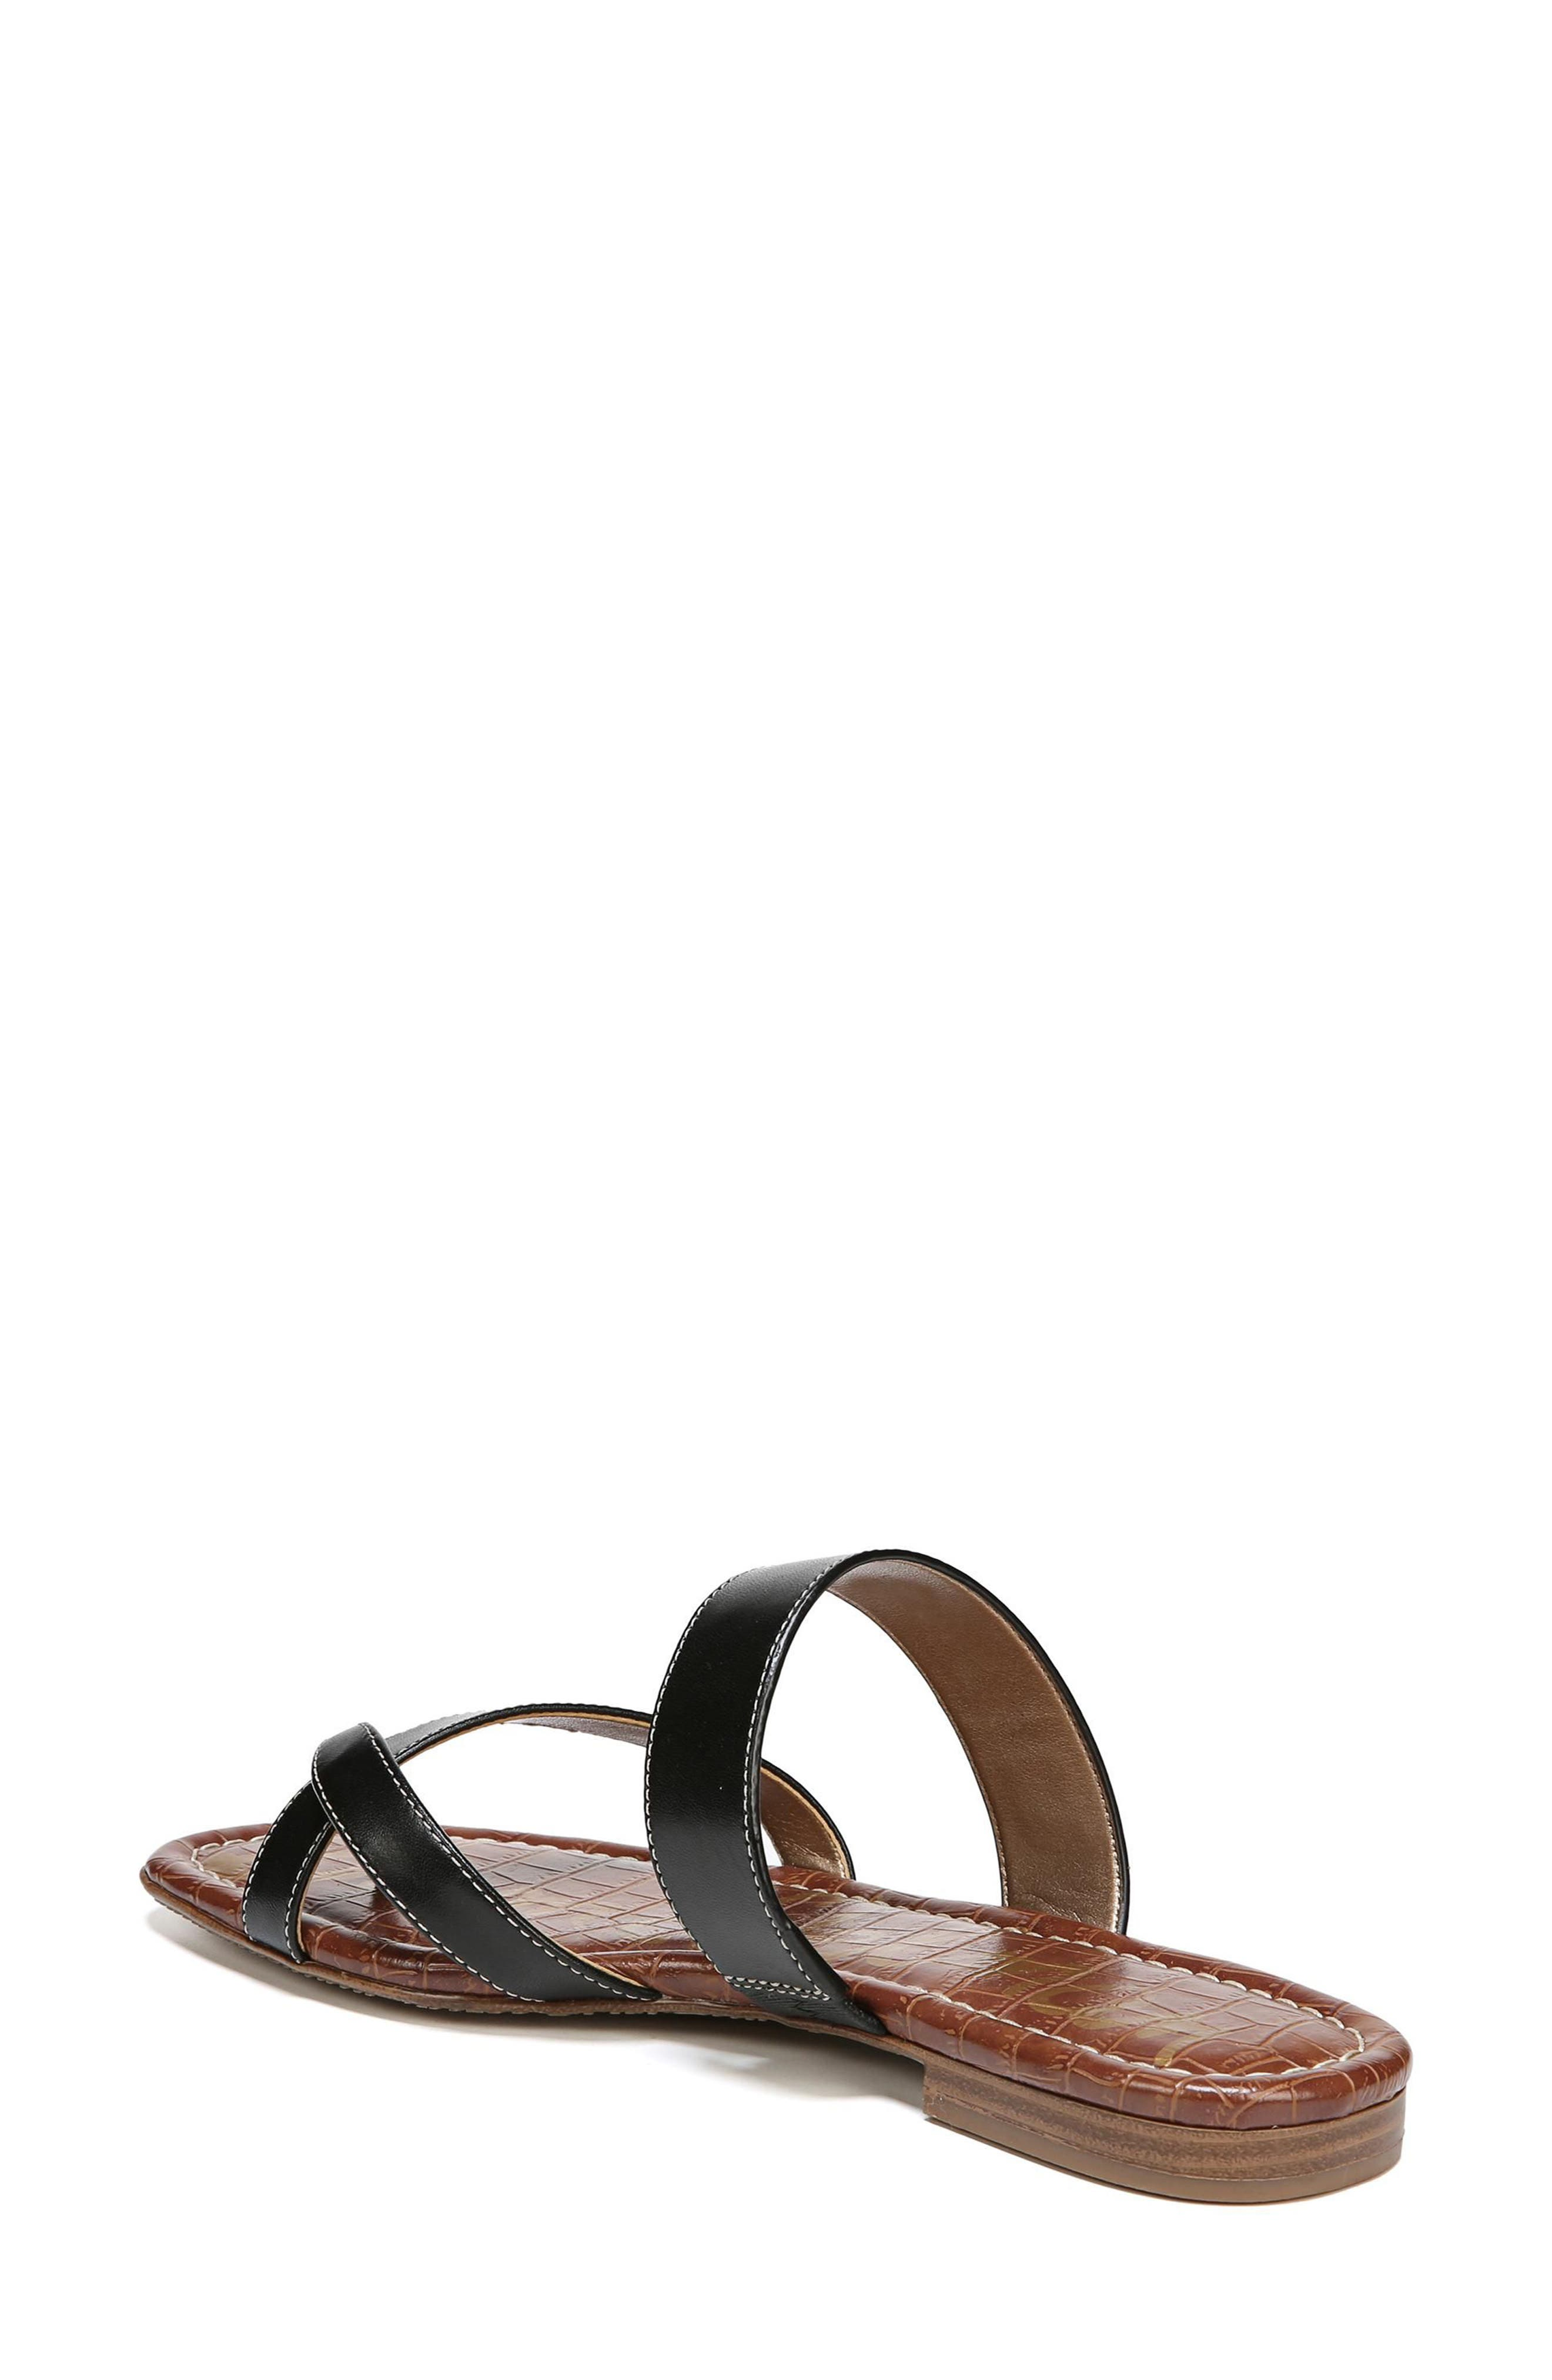 Bernice Genuine Calf Hair Sandal,                             Alternate thumbnail 2, color,                             003